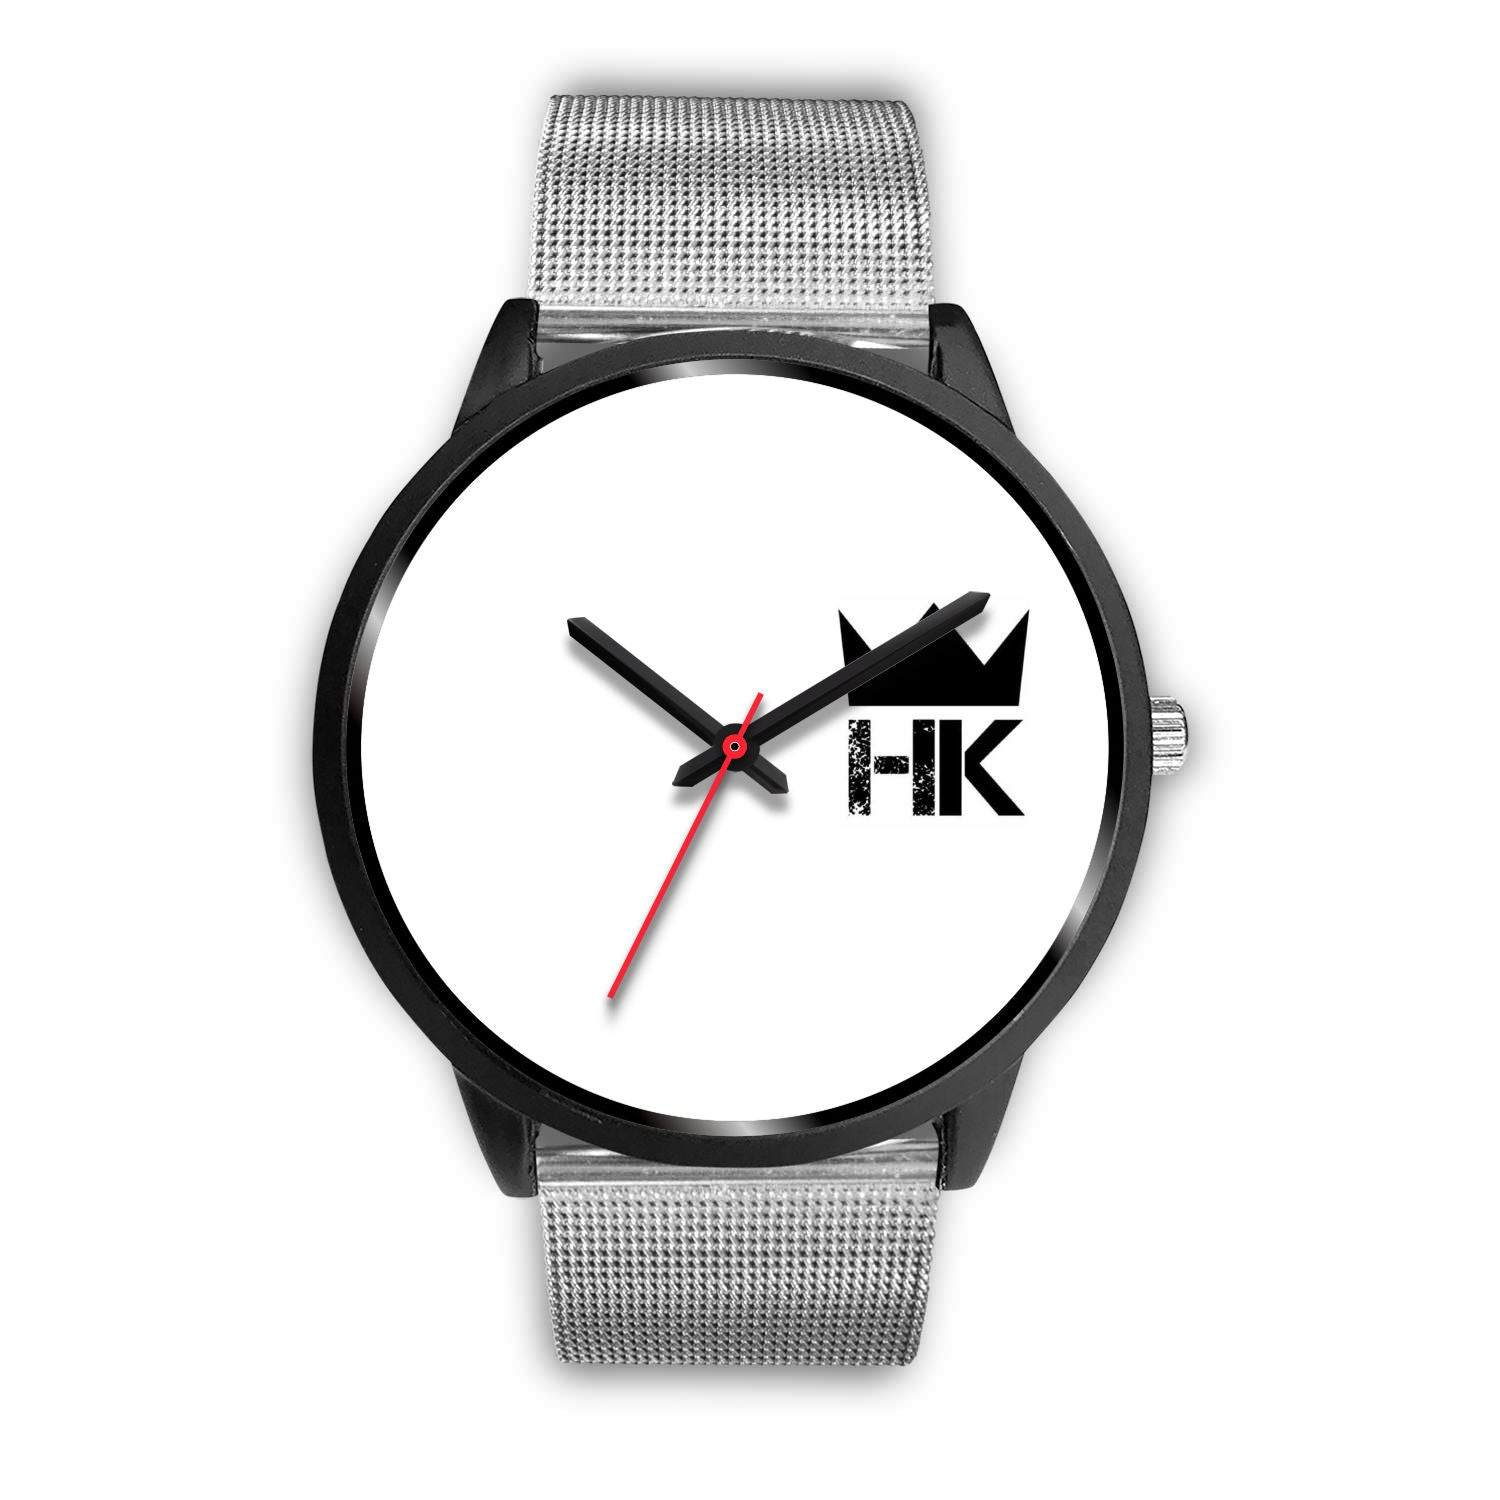 The H & K Crown 3:00 White Face Time Piece